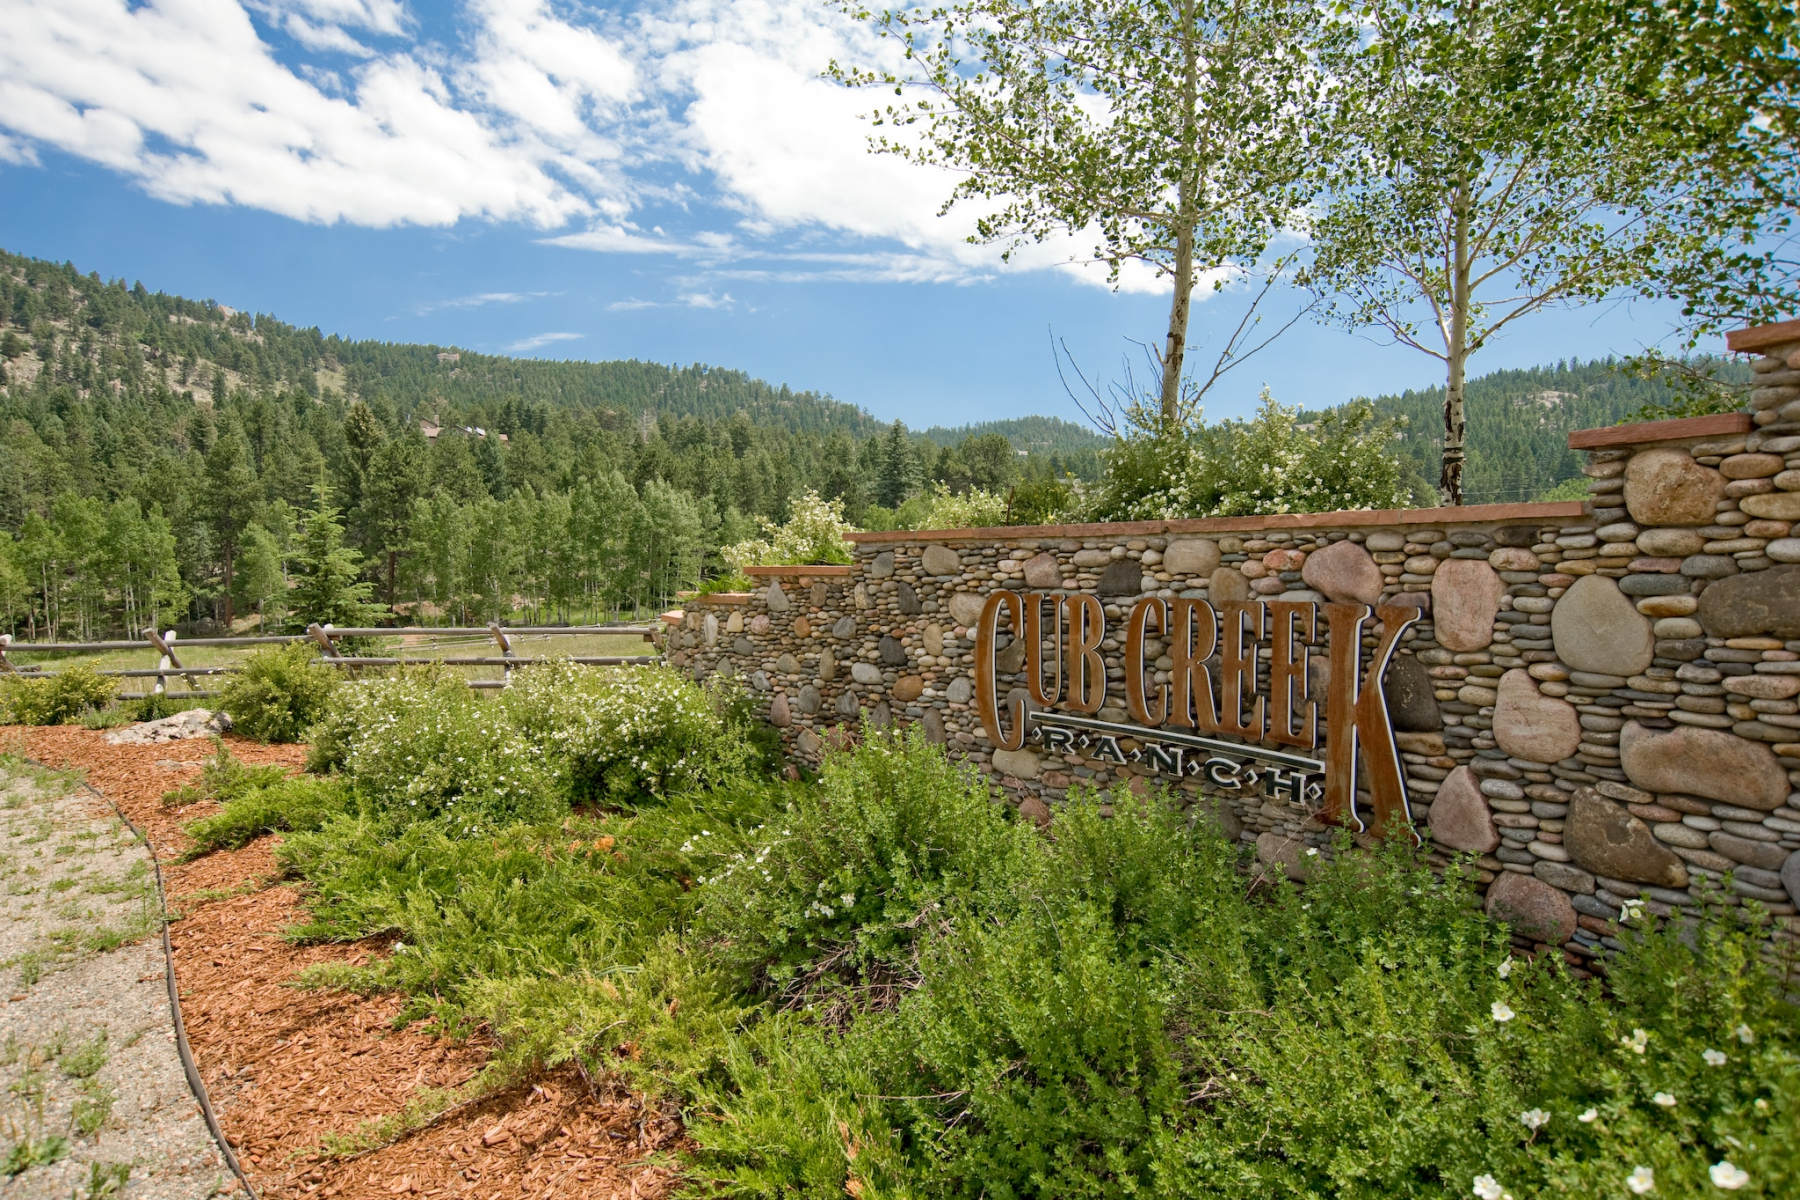 Terreno por un Venta en 6543 Little Cub Creek Rd Evergreen, Colorado 80439 Estados Unidos